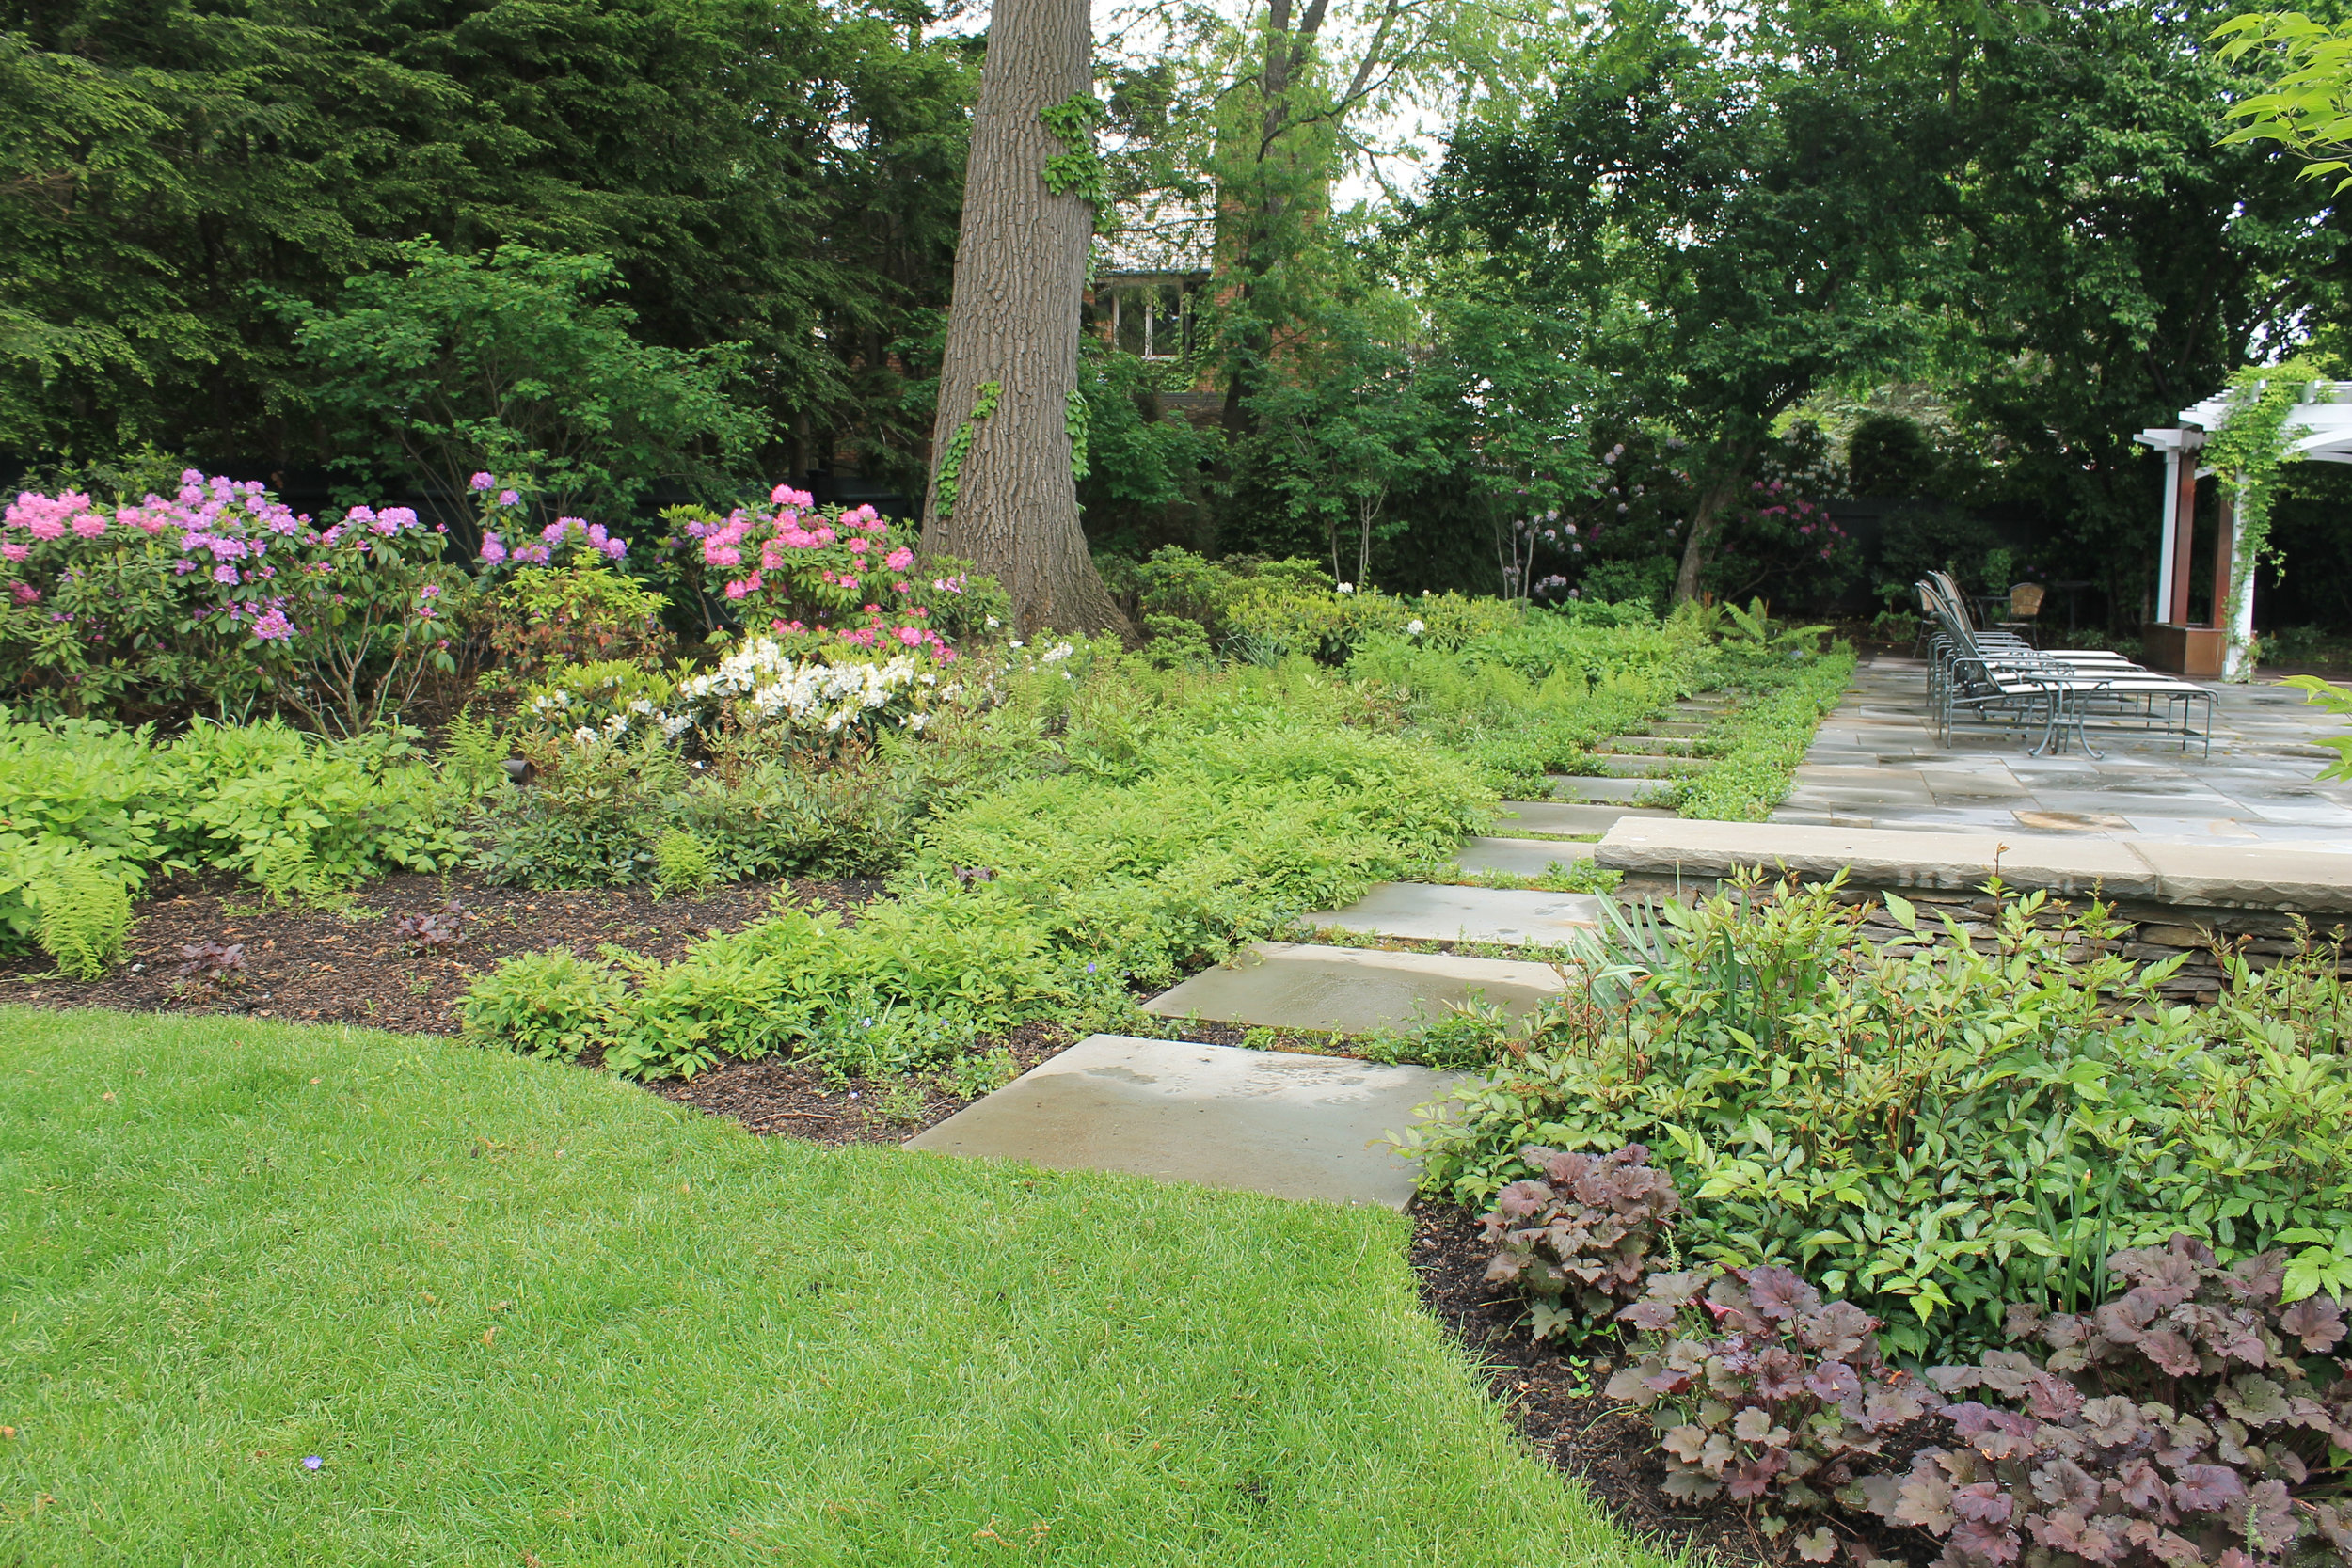 How to Find the Best Landscapers Near Me in Arlington, MA